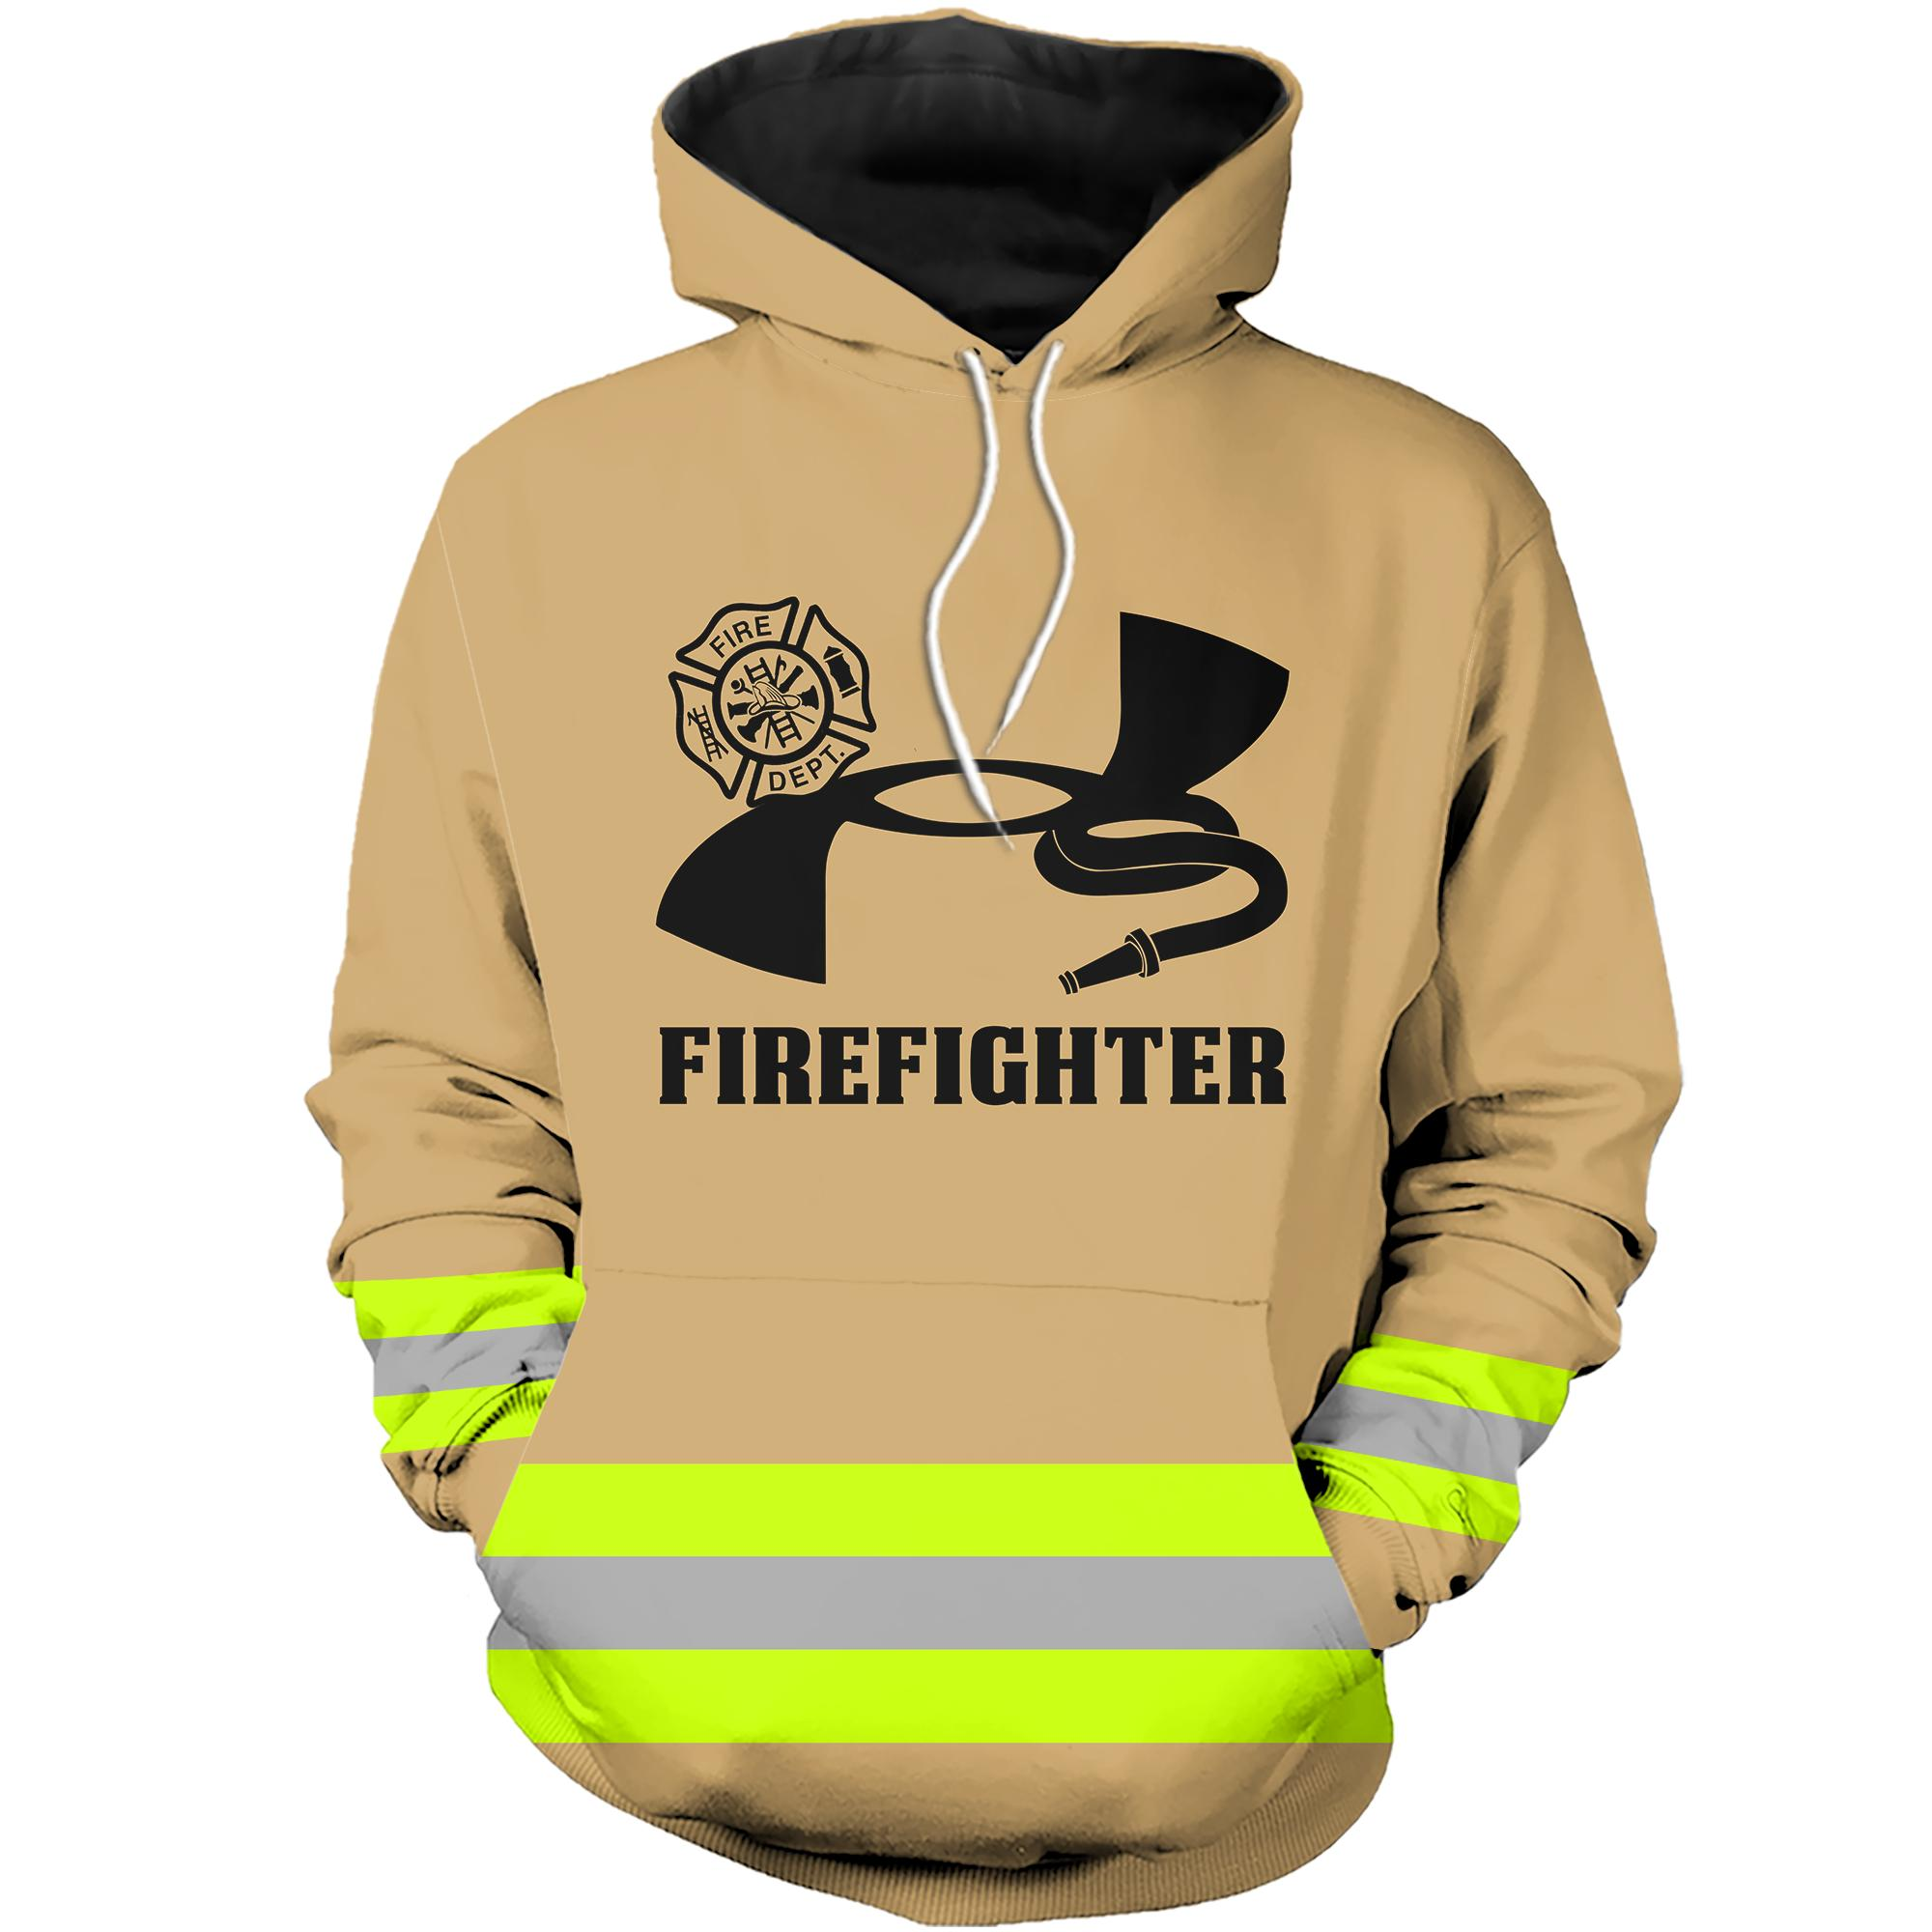 Under Armour Firefighter 3D hoodie - Brown